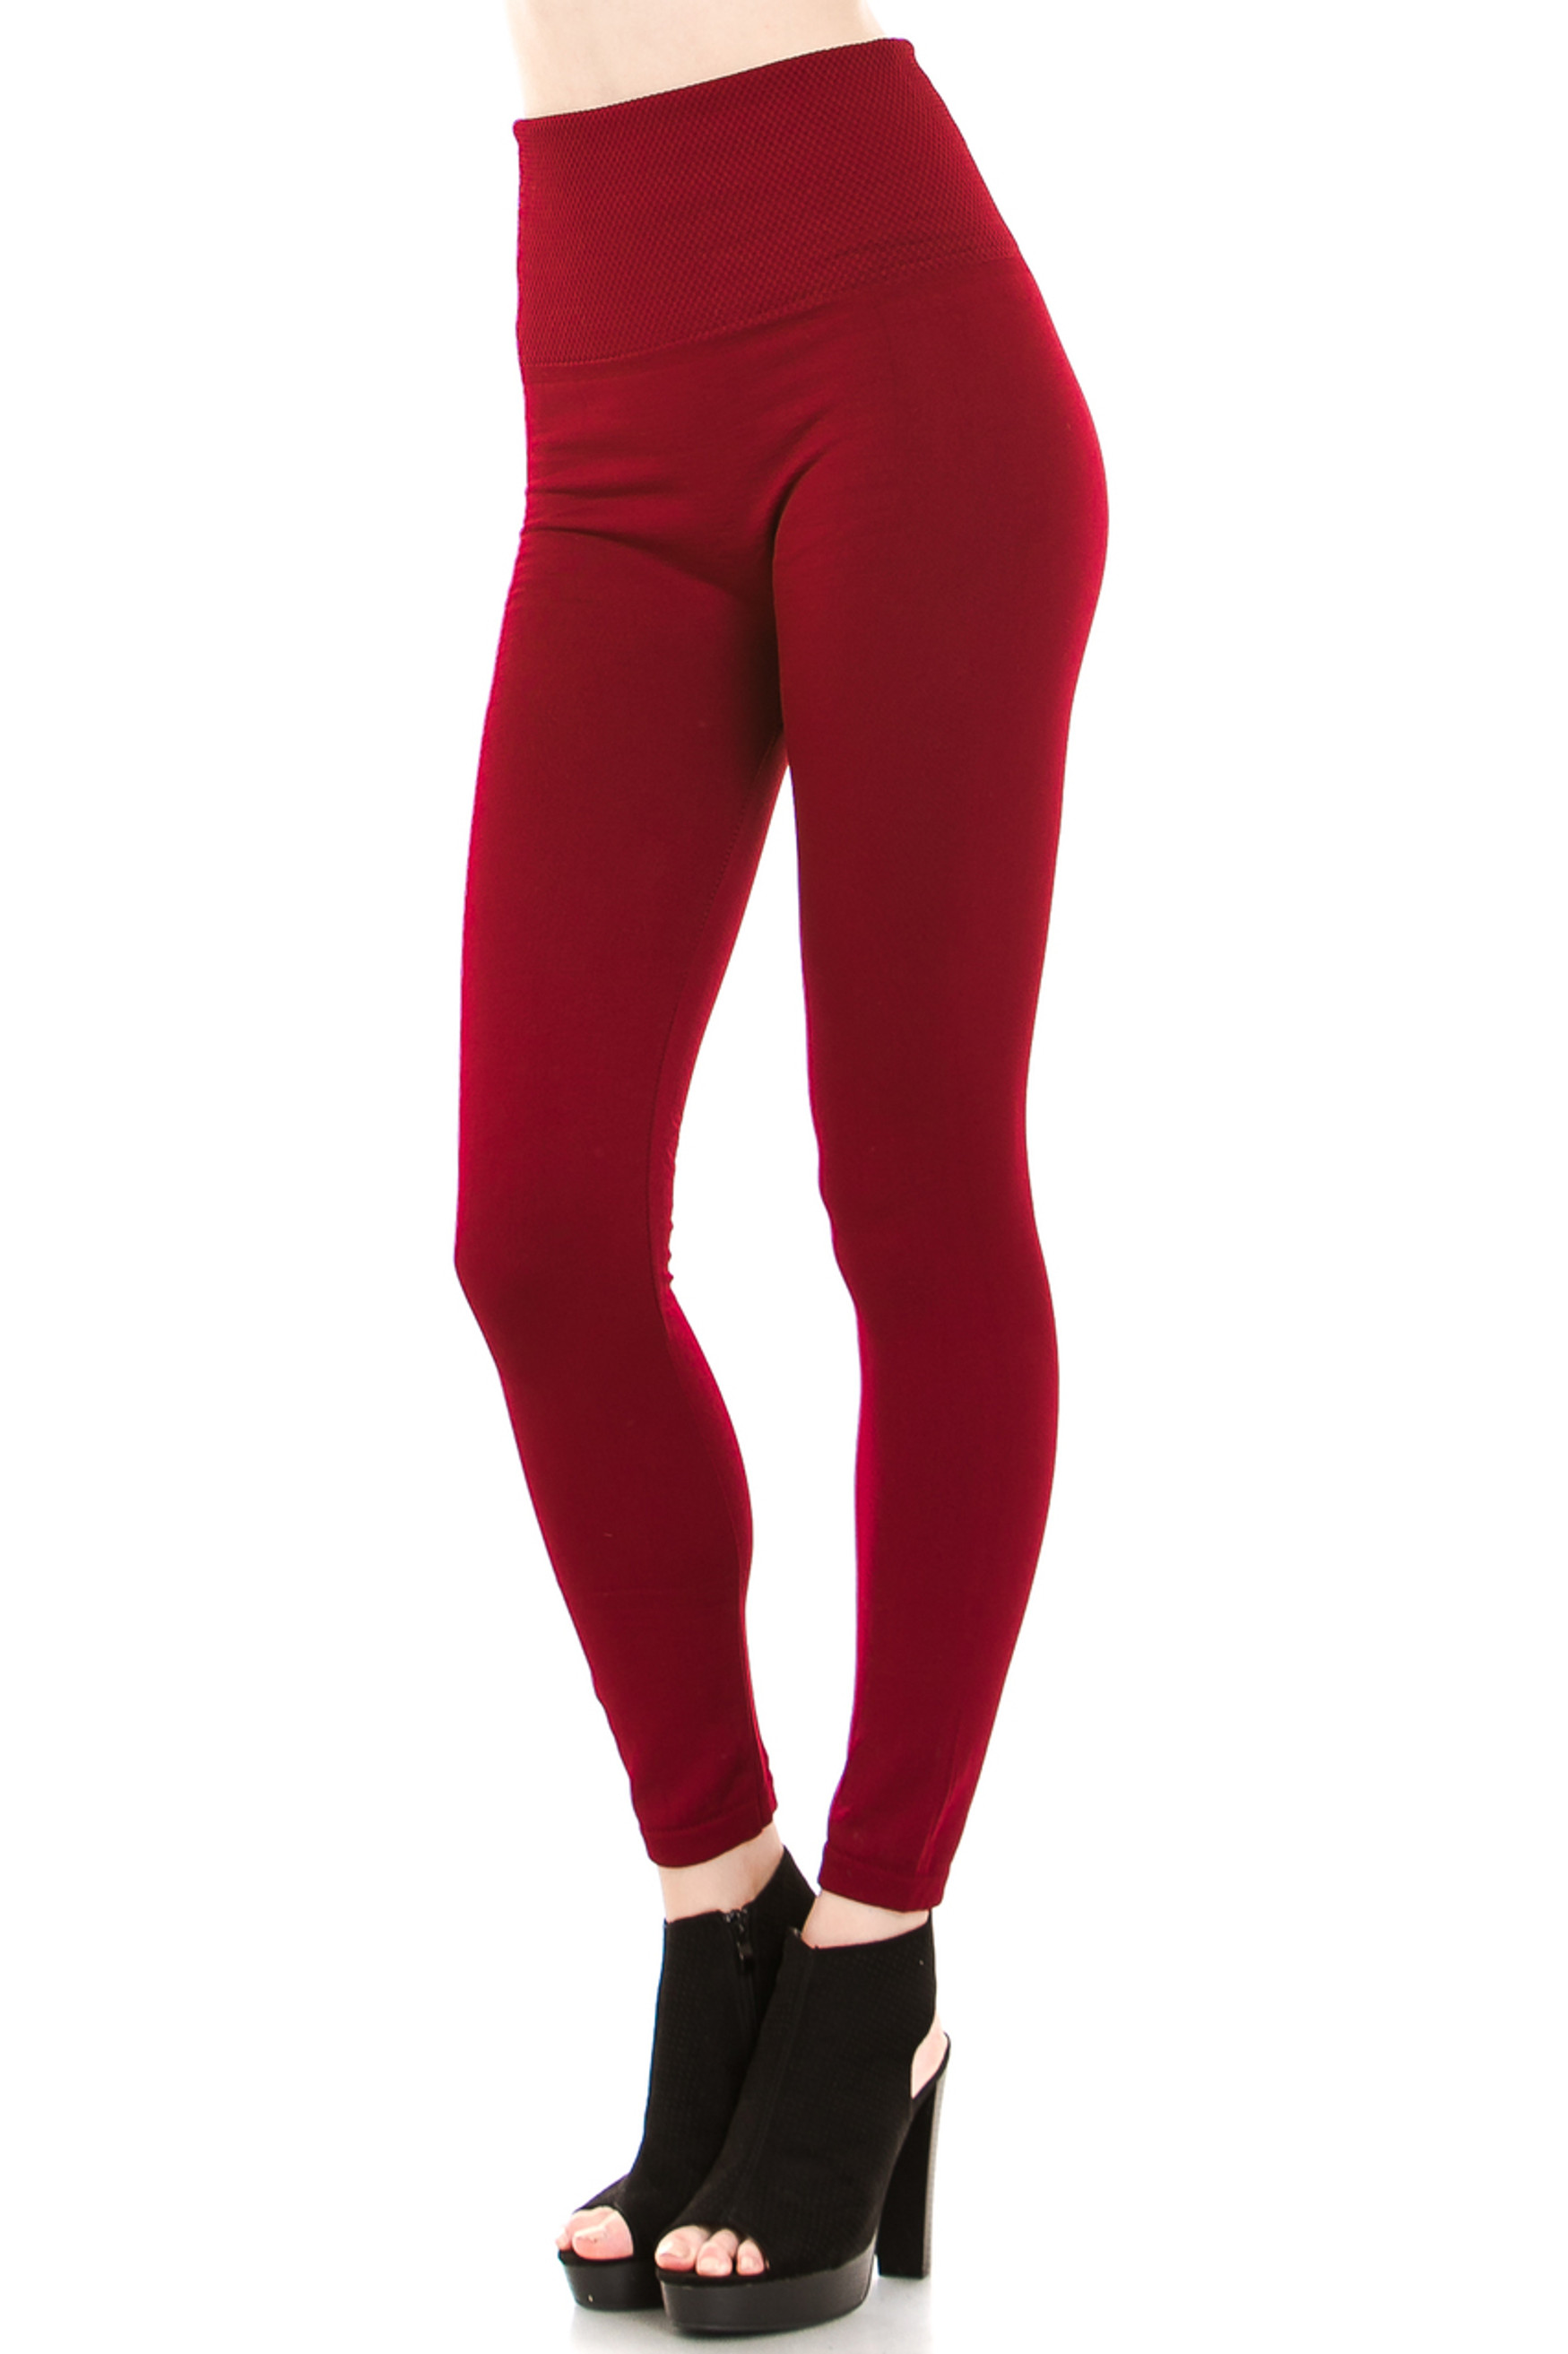 45 degree image of our Burgundy Banded High Waisted Fleece Lined Leggings showing the ribbed high waisted fabric waist band and full length Burgundy fleece legging